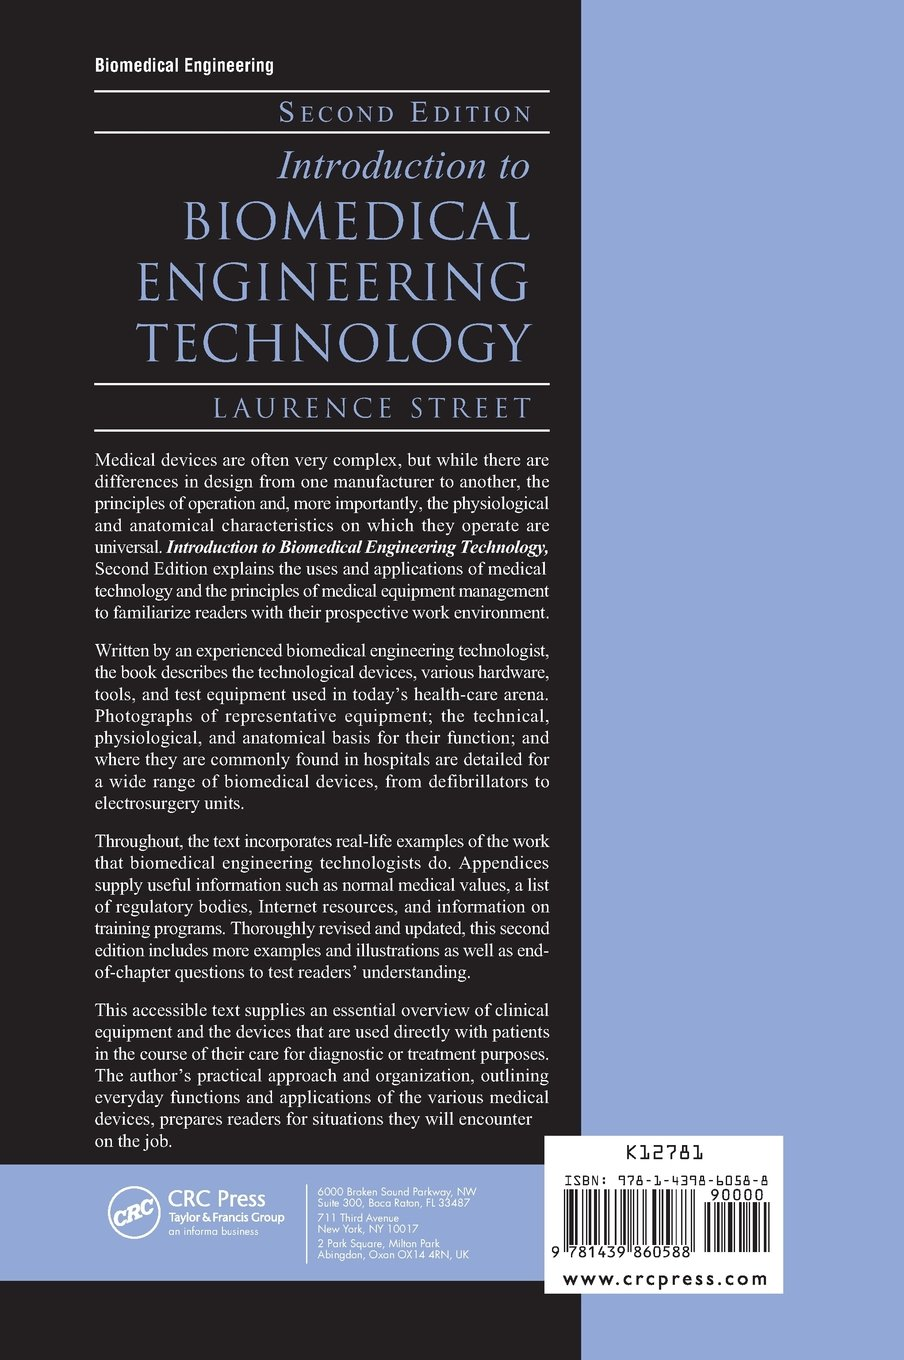 Buy Introduction to Biomedical Engineering Technology